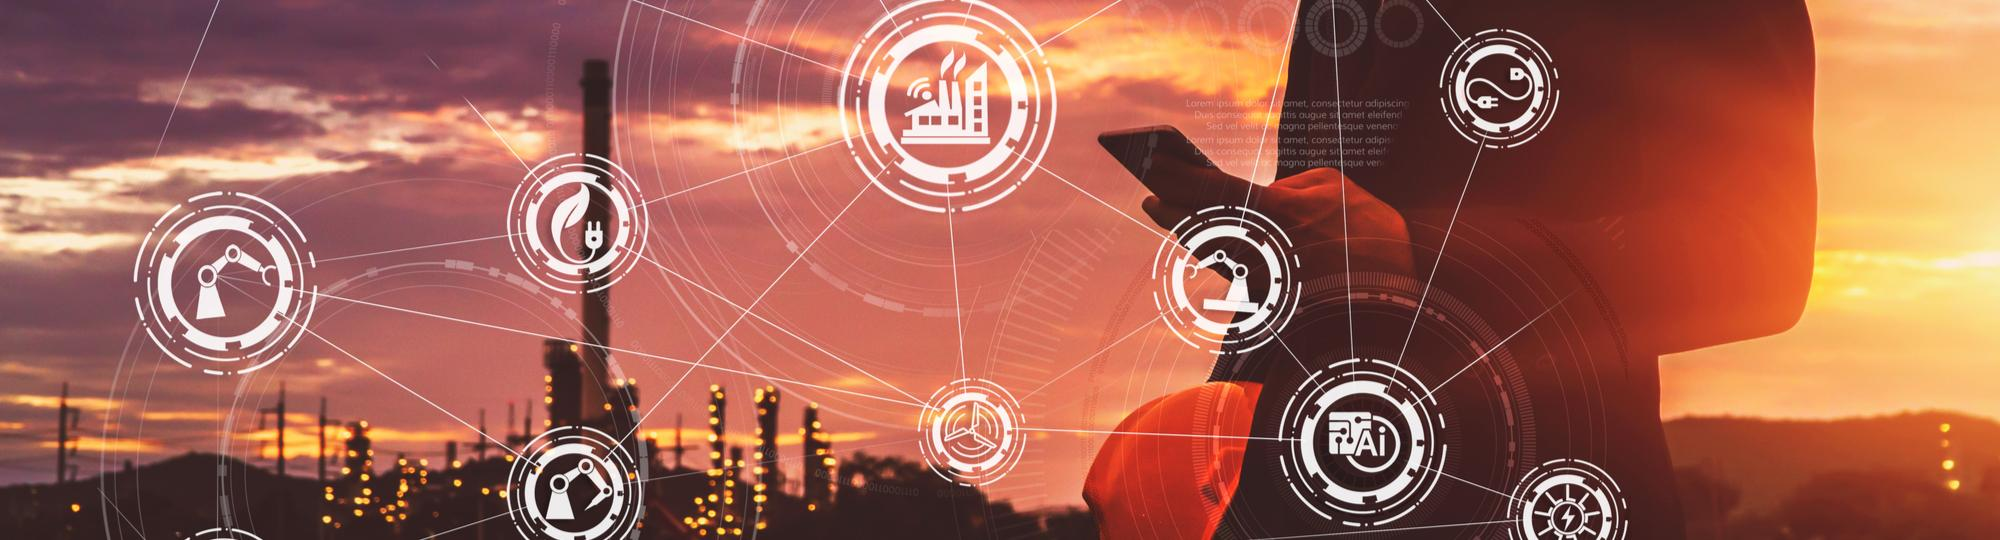 Intelligent Automation in Oil and Gas